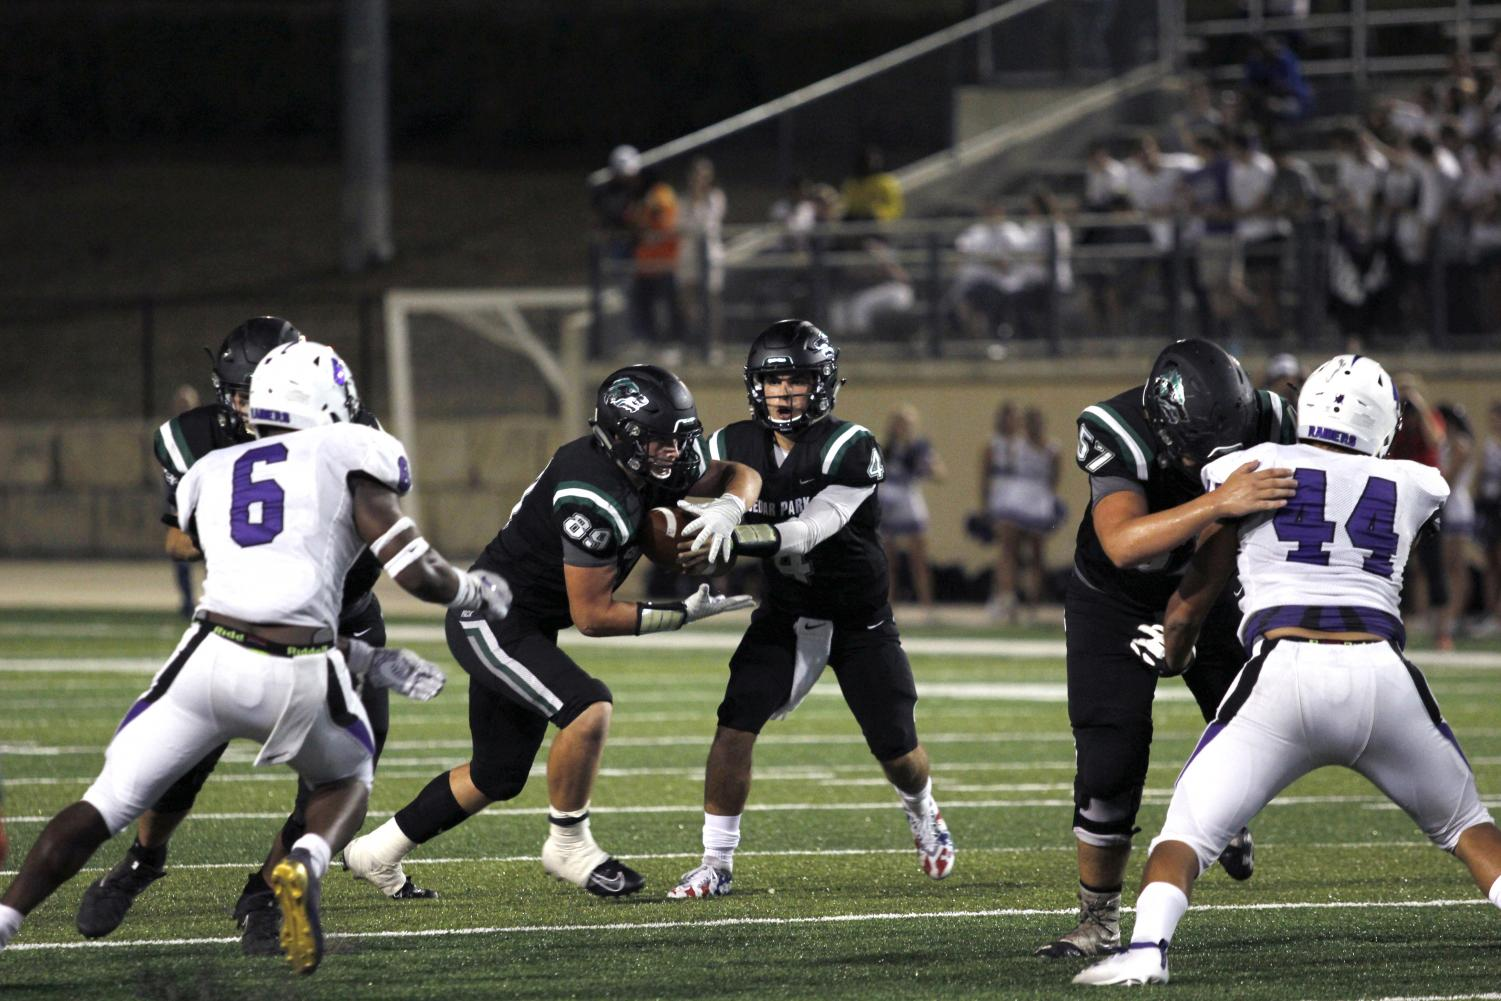 QB Ryder Hernandez runs a run-pass option with RB Jonathan Stockwell on Sept. 9. This game, the offensive line gave Hernandez time to sit in the pocket and thow, leading to highlight-reel plays.